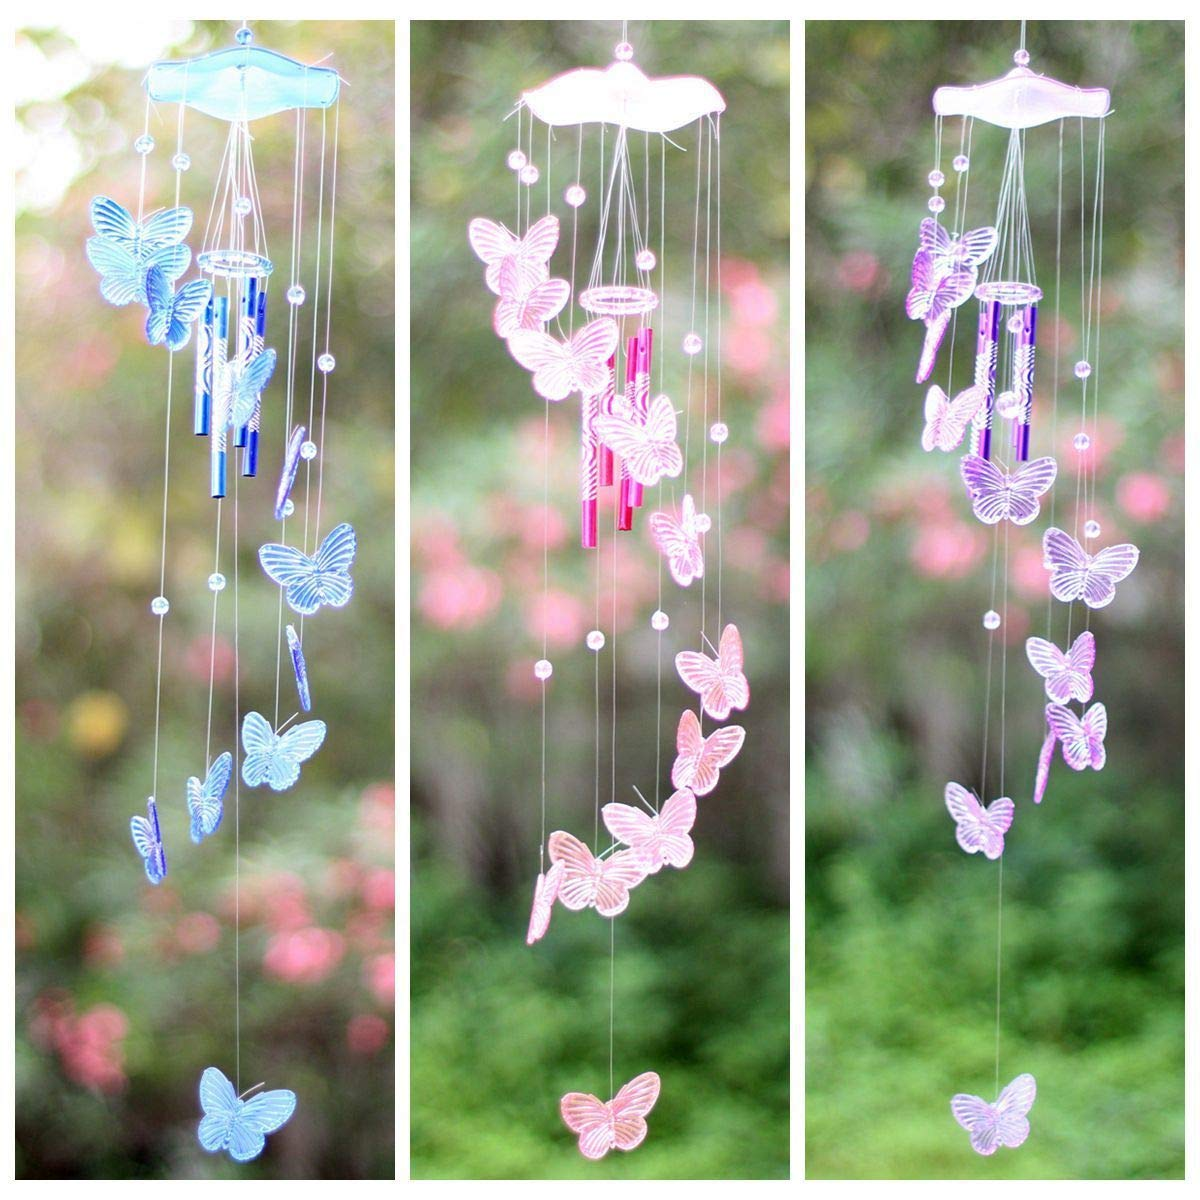 Hanbaili Crystal Butterfly Wind Chime Bell Garden Ornament Gift Yard Hanging Decor